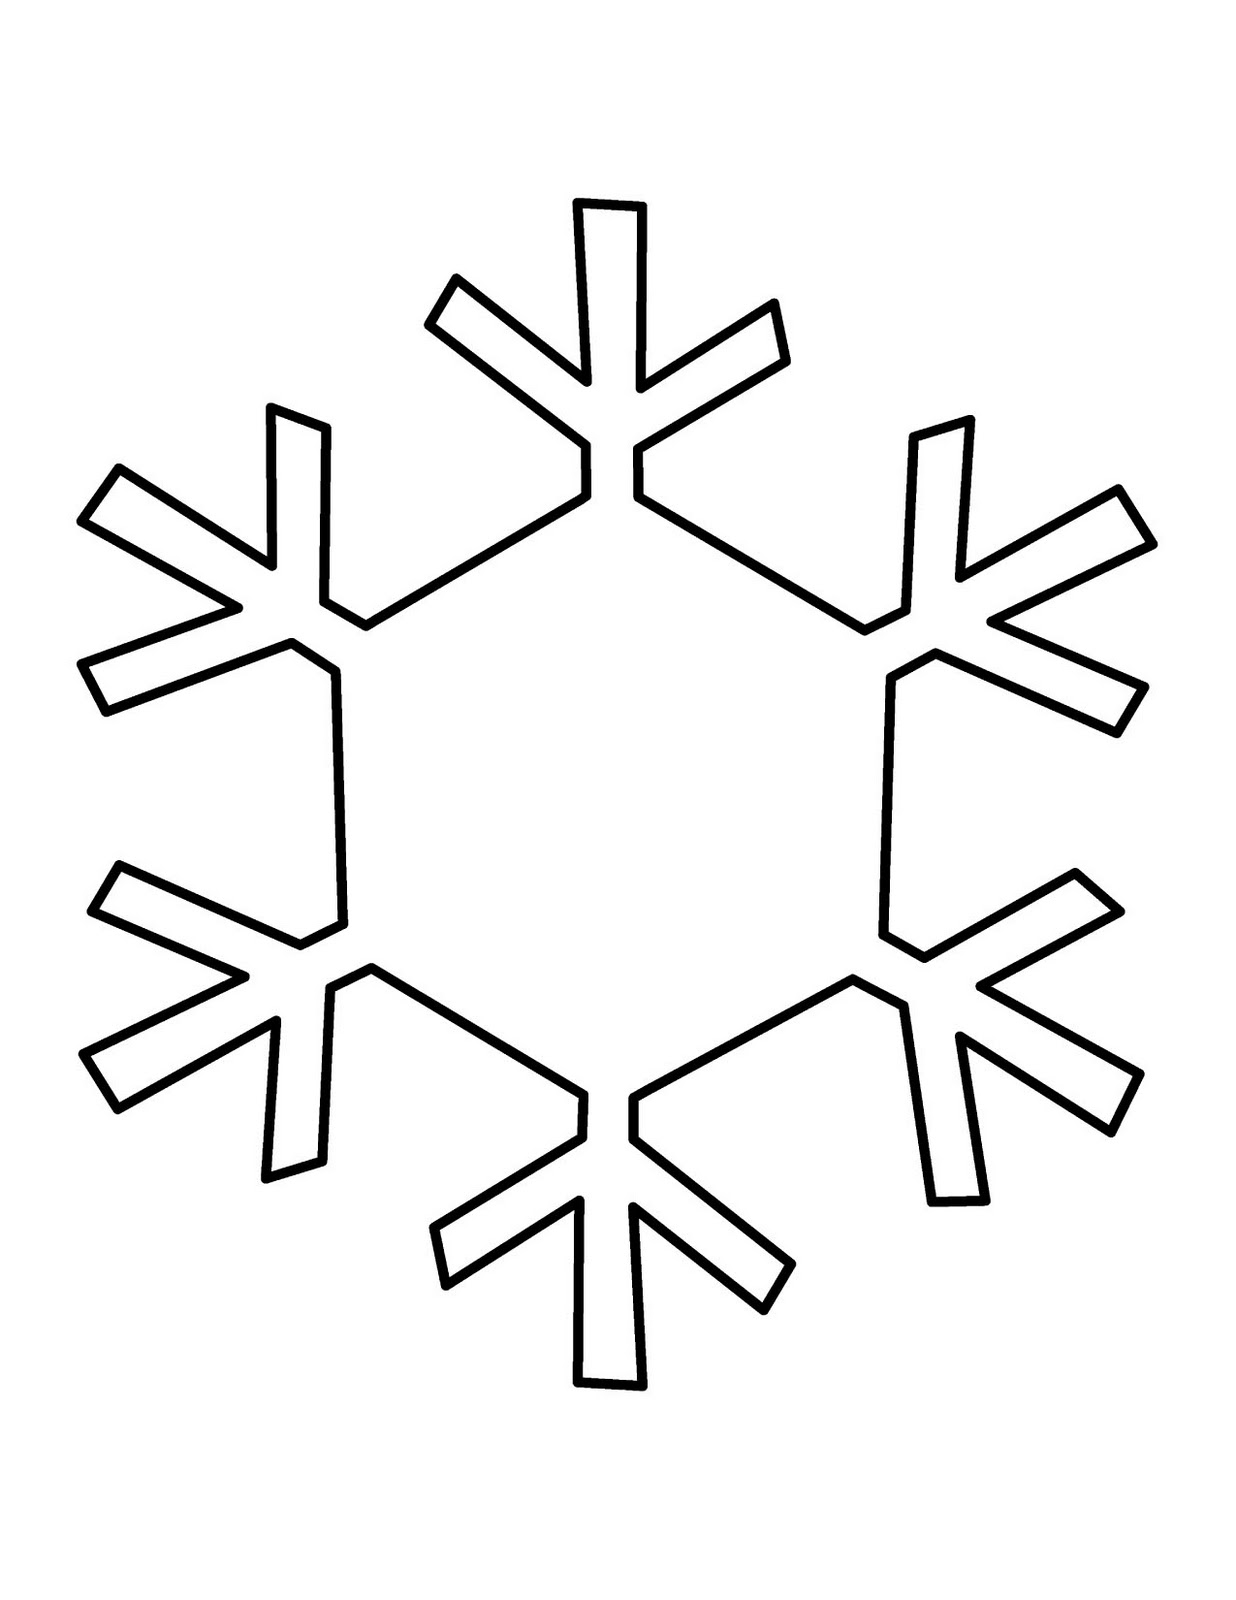 Templates  clipart snowflake #7